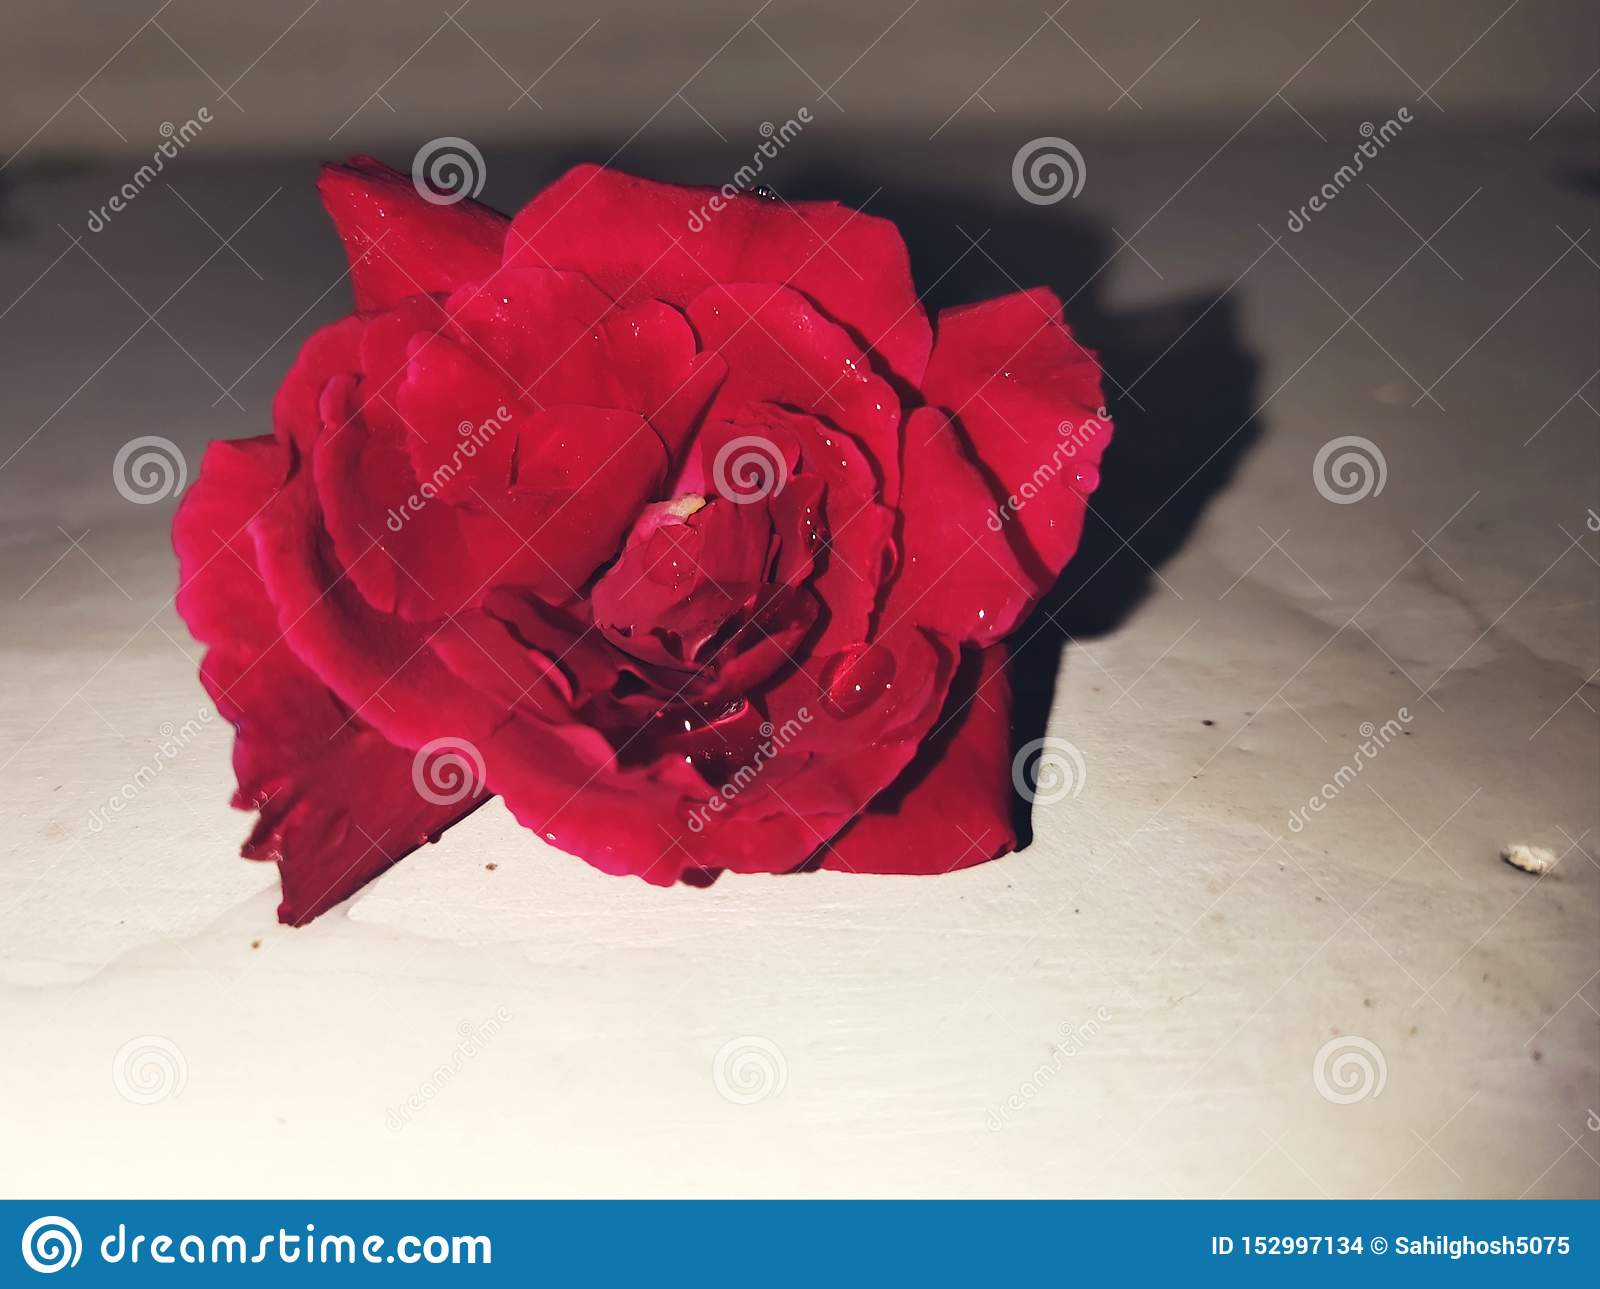 Red rose.blossom